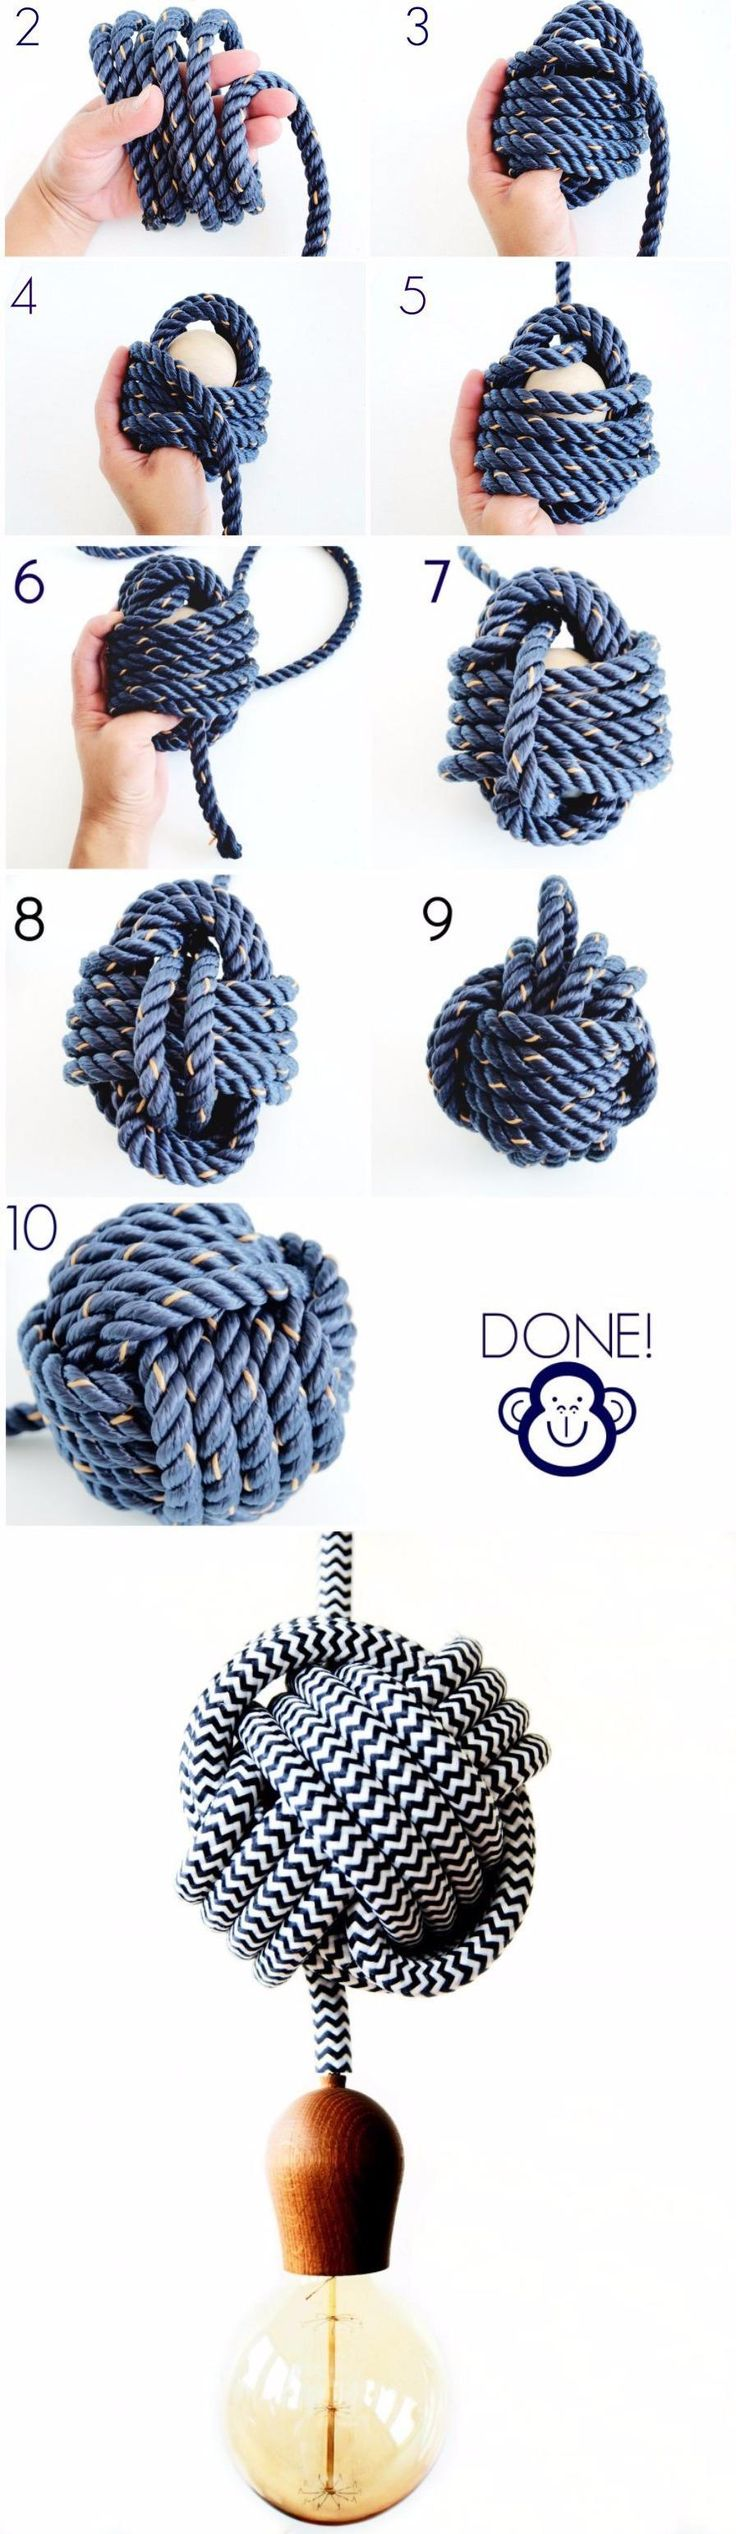 Bombilla colgante con nudo - monsterscircus.com - DIY Knot Pendant Light